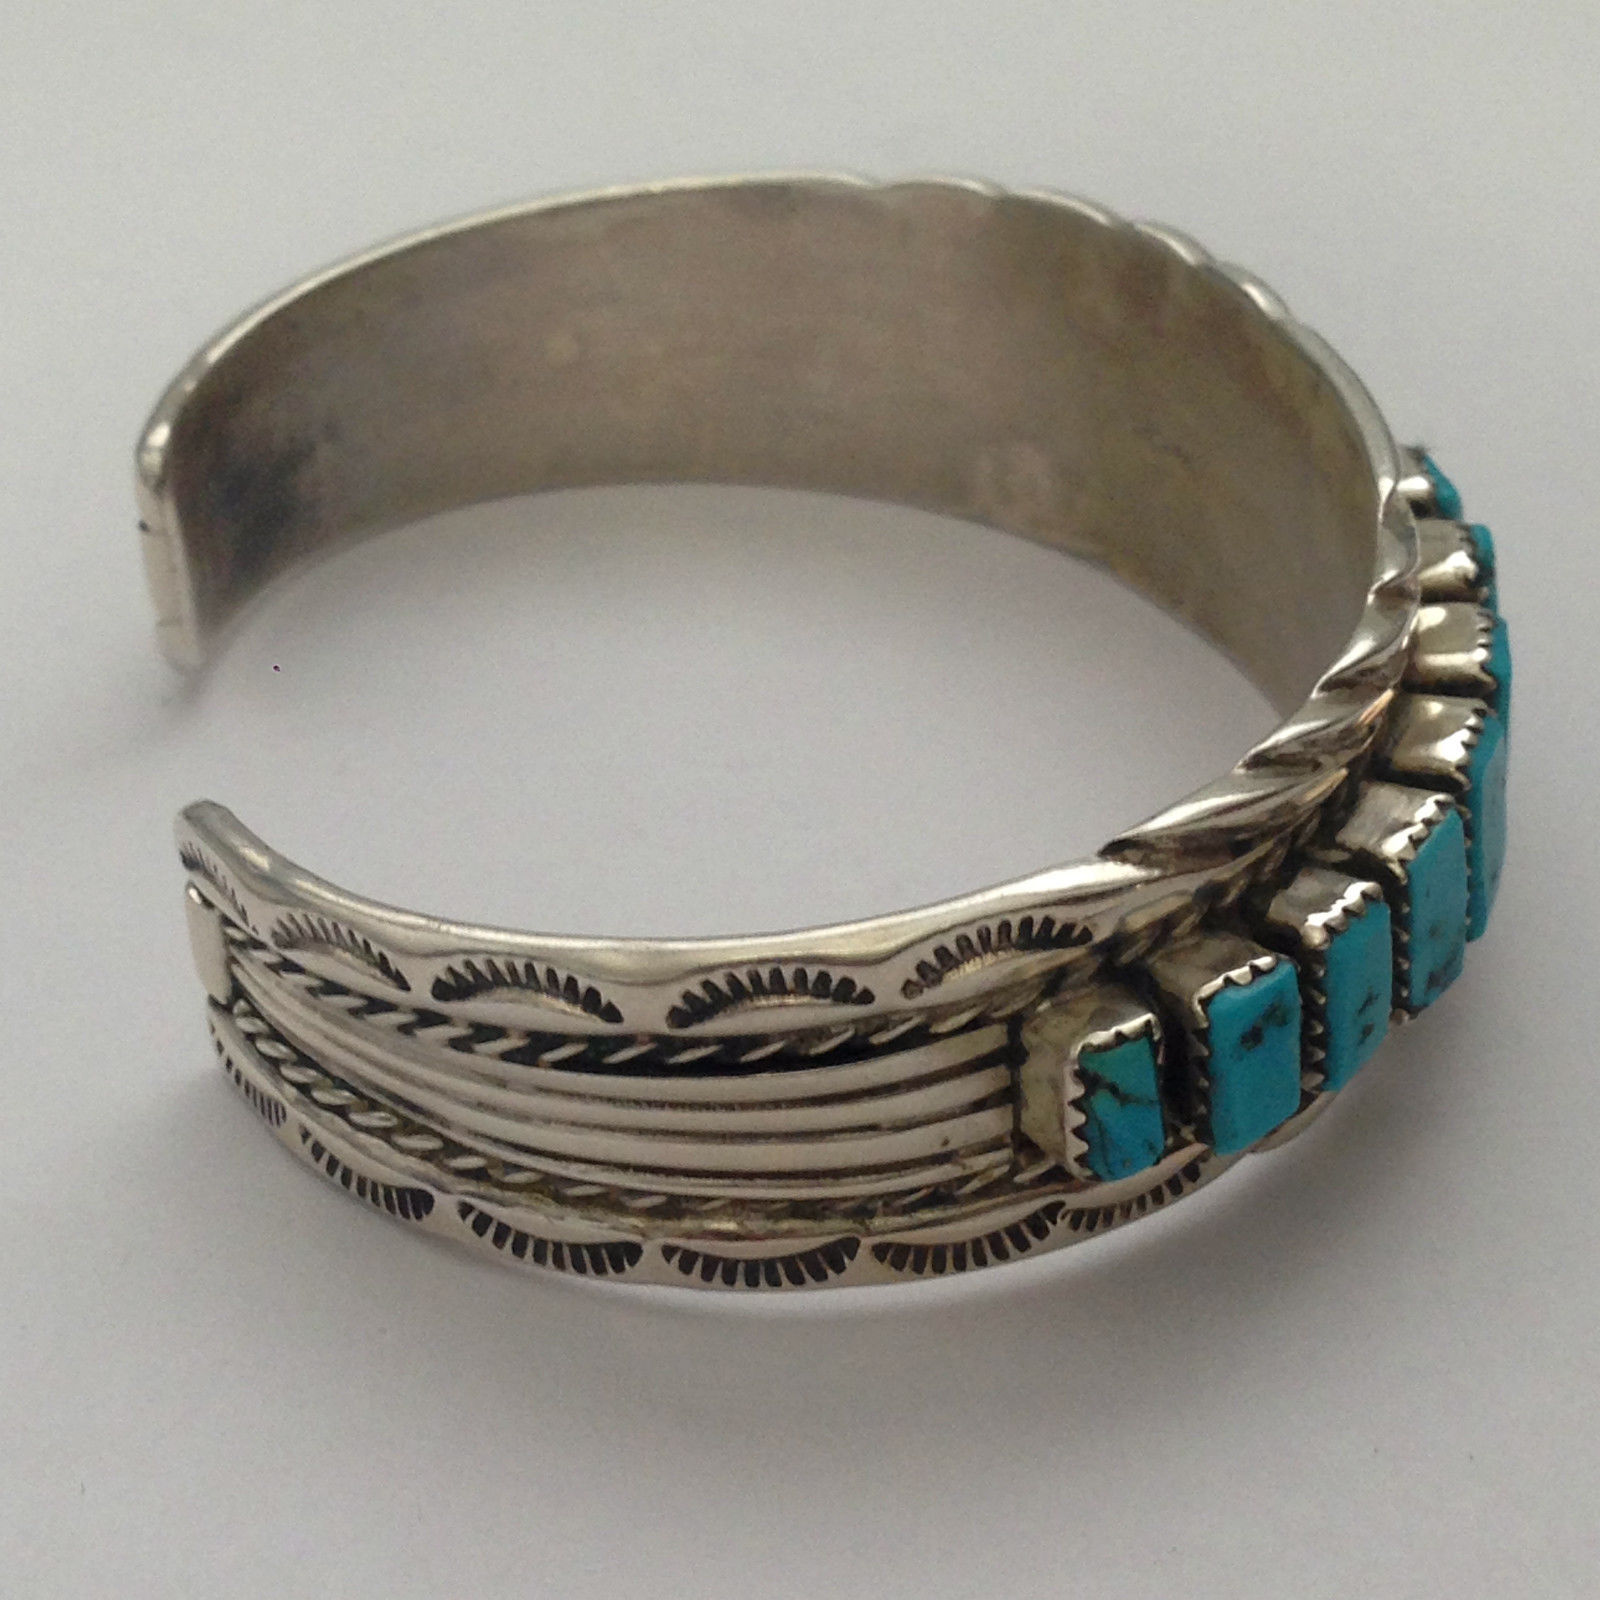 Sterling Silver Navajo Handmade 15 Genuine Turquoise Stone Cuff Bracelet By T.T